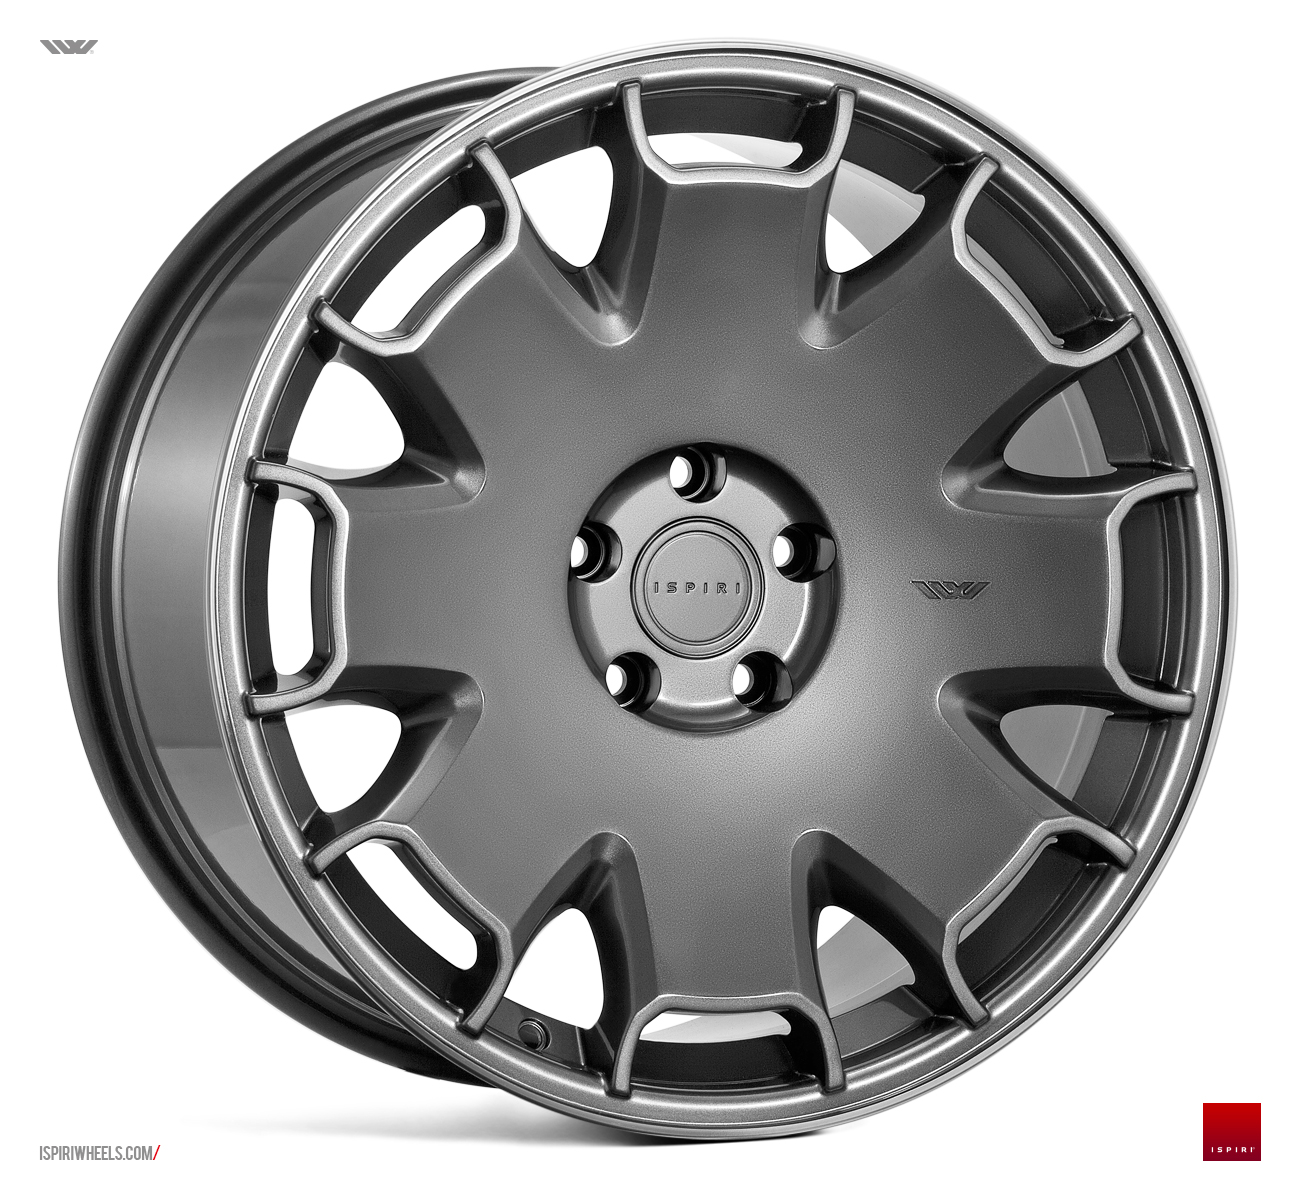 "NEW 18"" ISPIRI CSR2 ALLOY WHEELS IN CARBON GRAPHITE WITH POLISHED LIP et35/38"